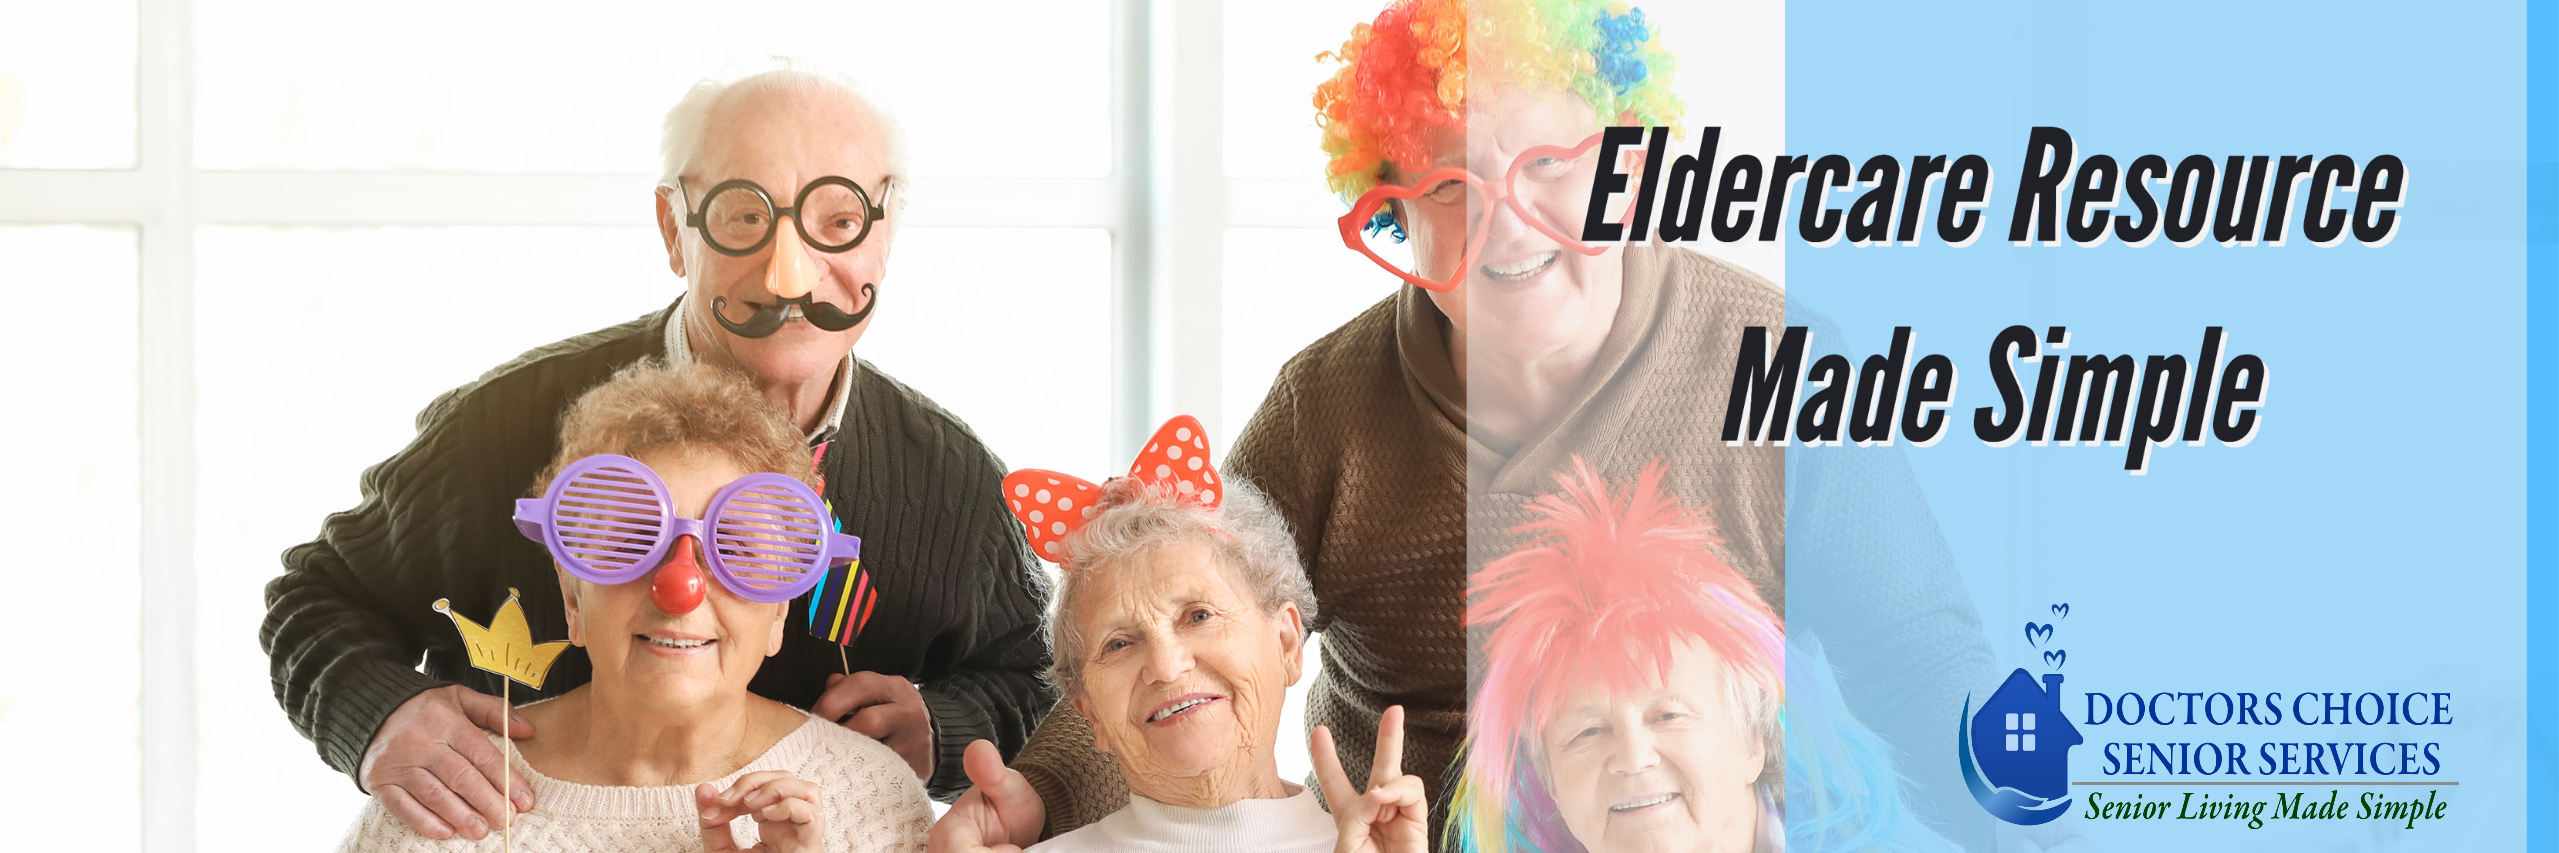 Eldercare Resource Made Simple